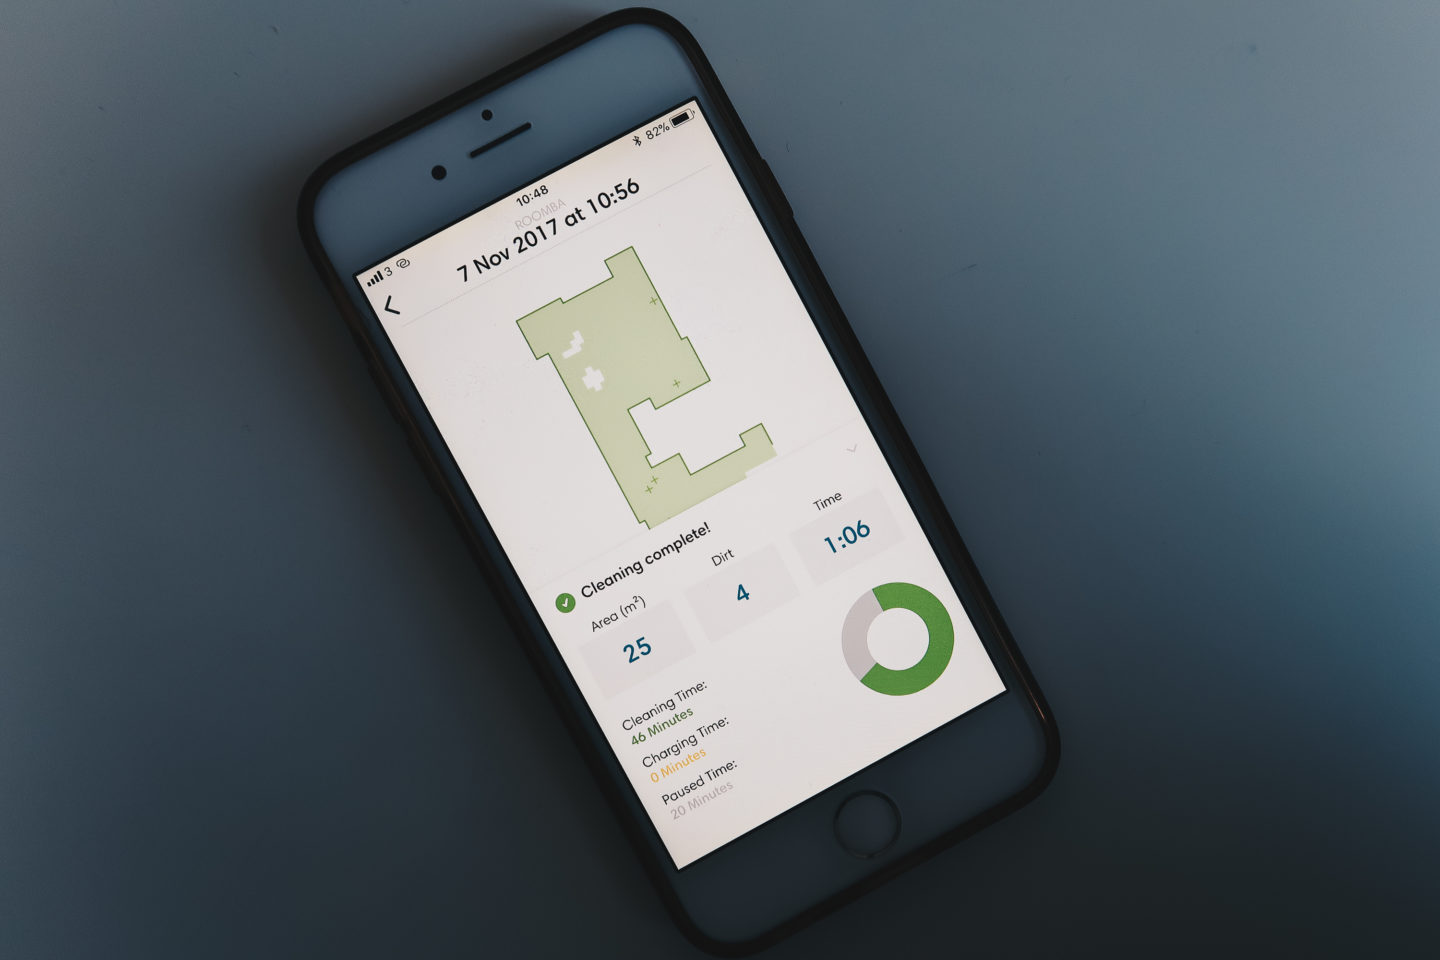 Roomba Review App